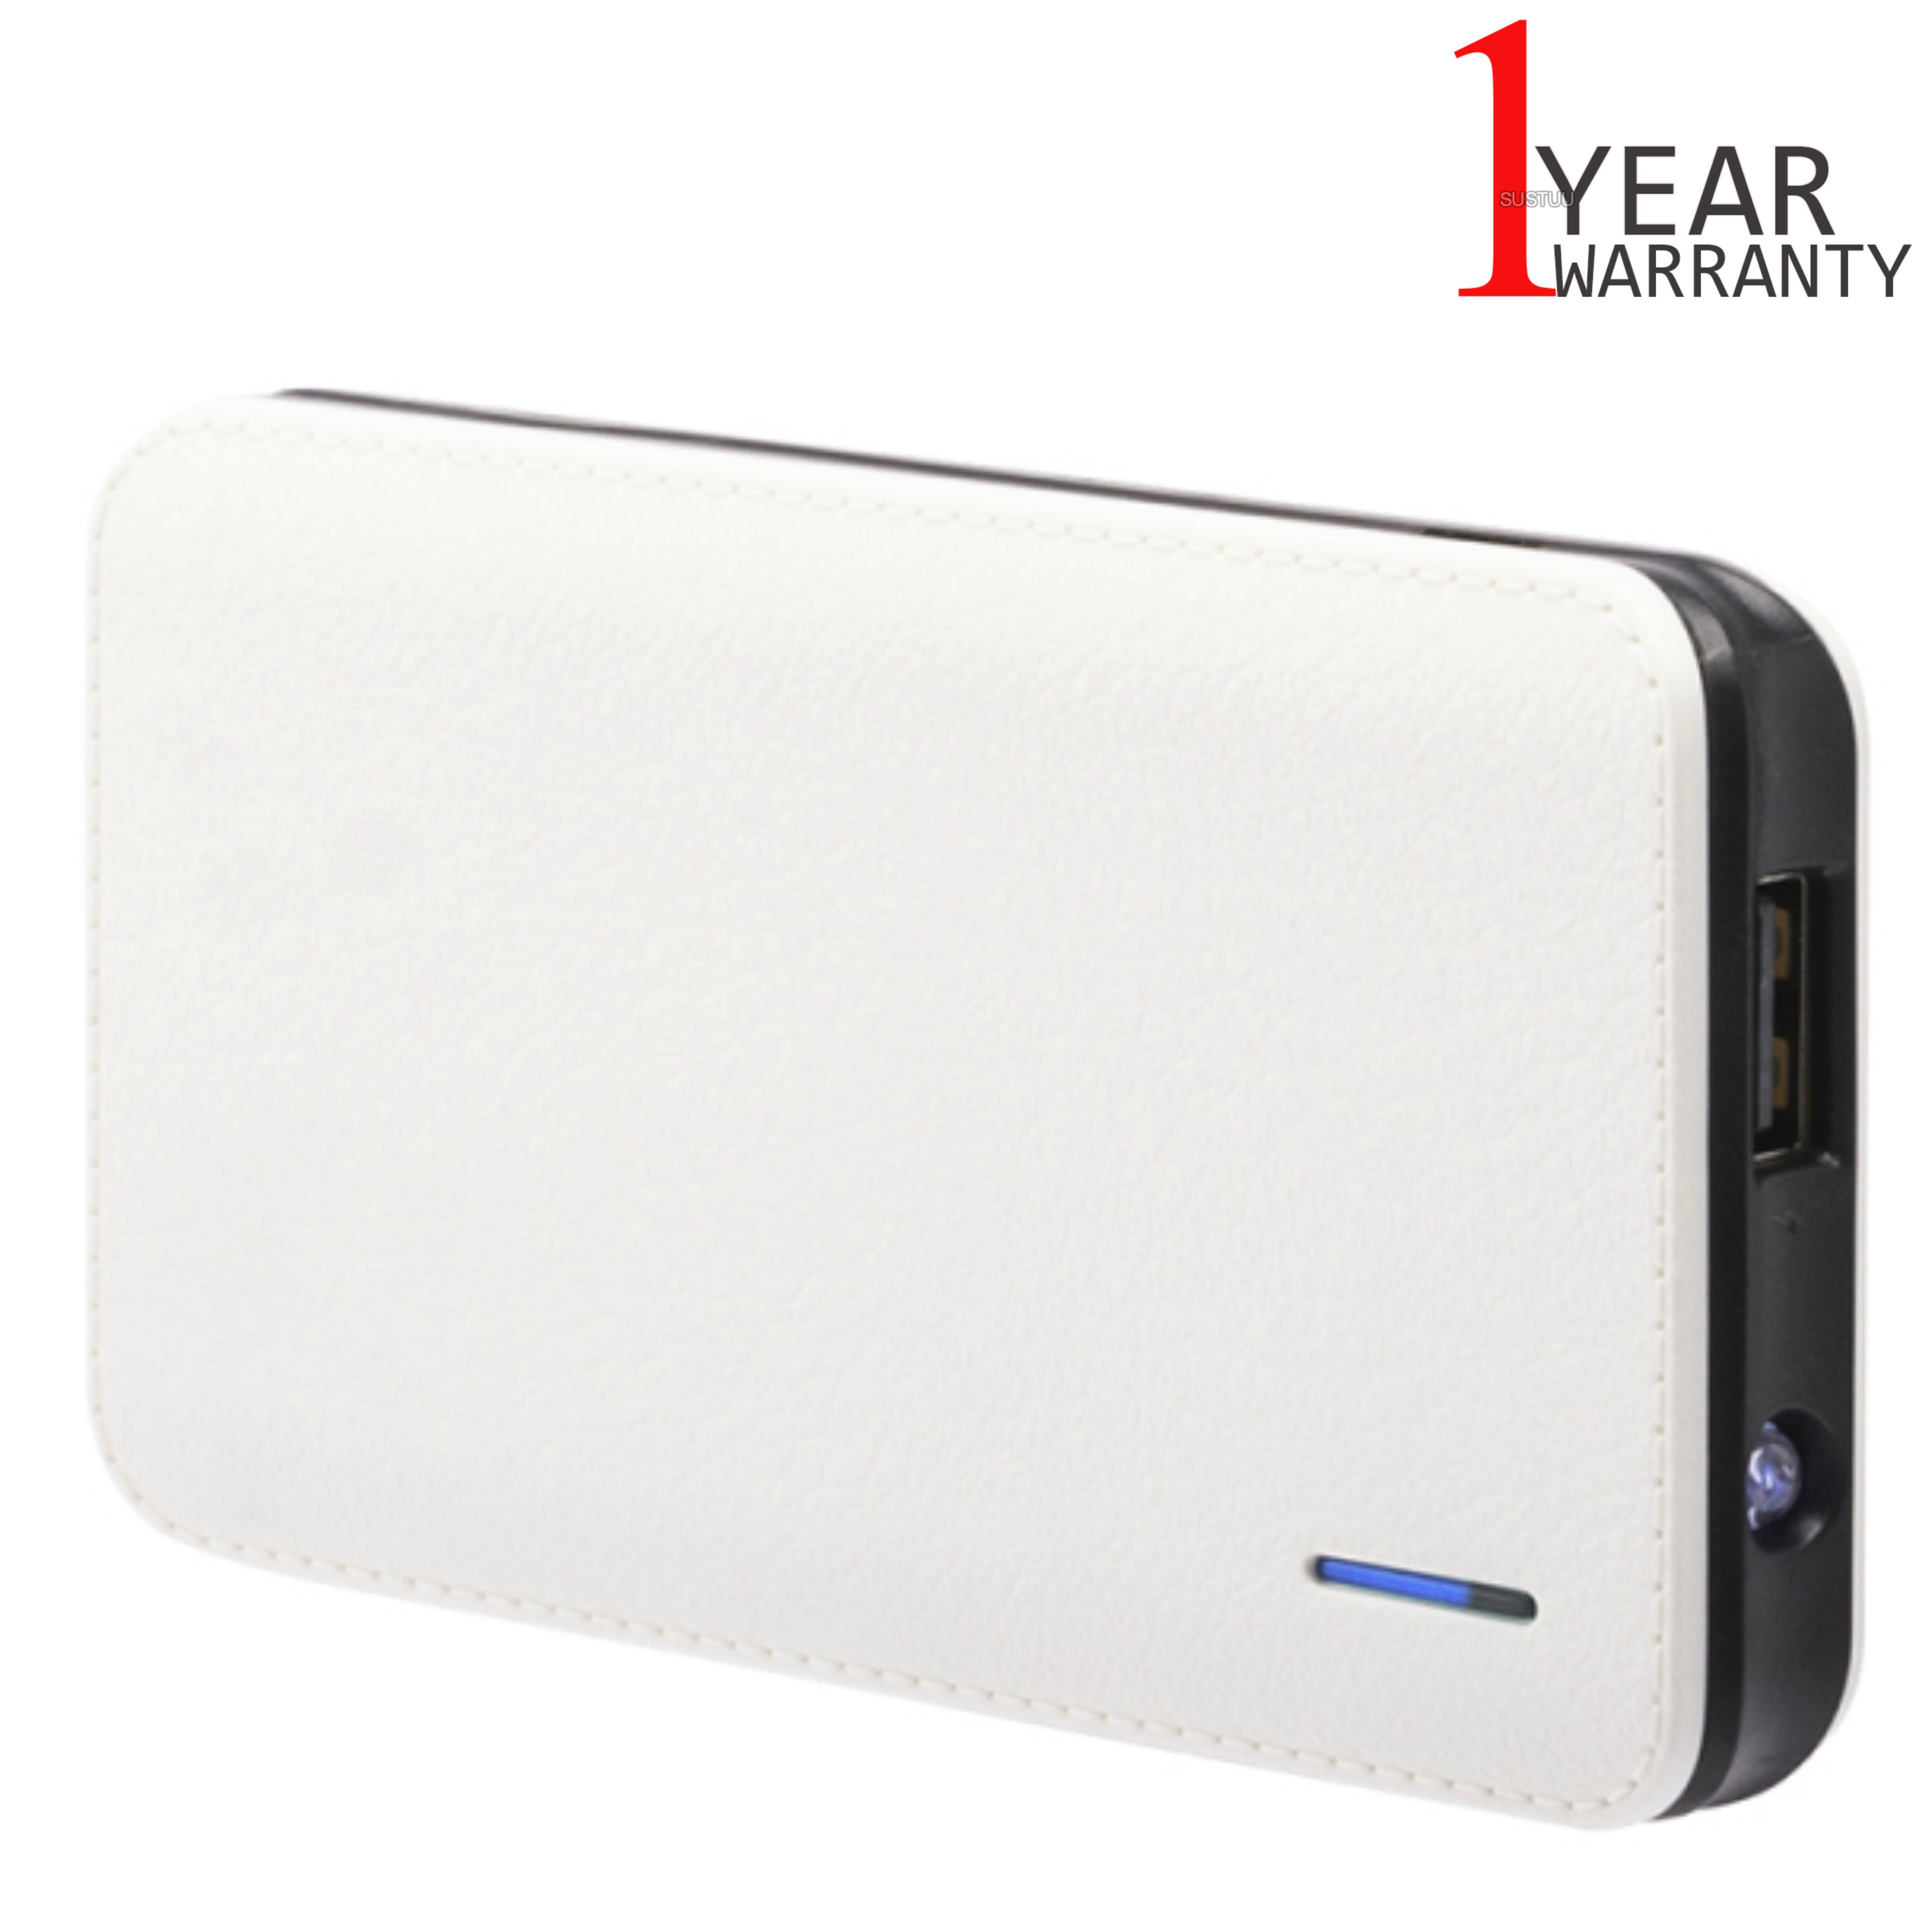 Urbanz 4000mAh Power Charger?Mobile-Smart Phones-Tablets-E-Readers-GPS?White?NEW